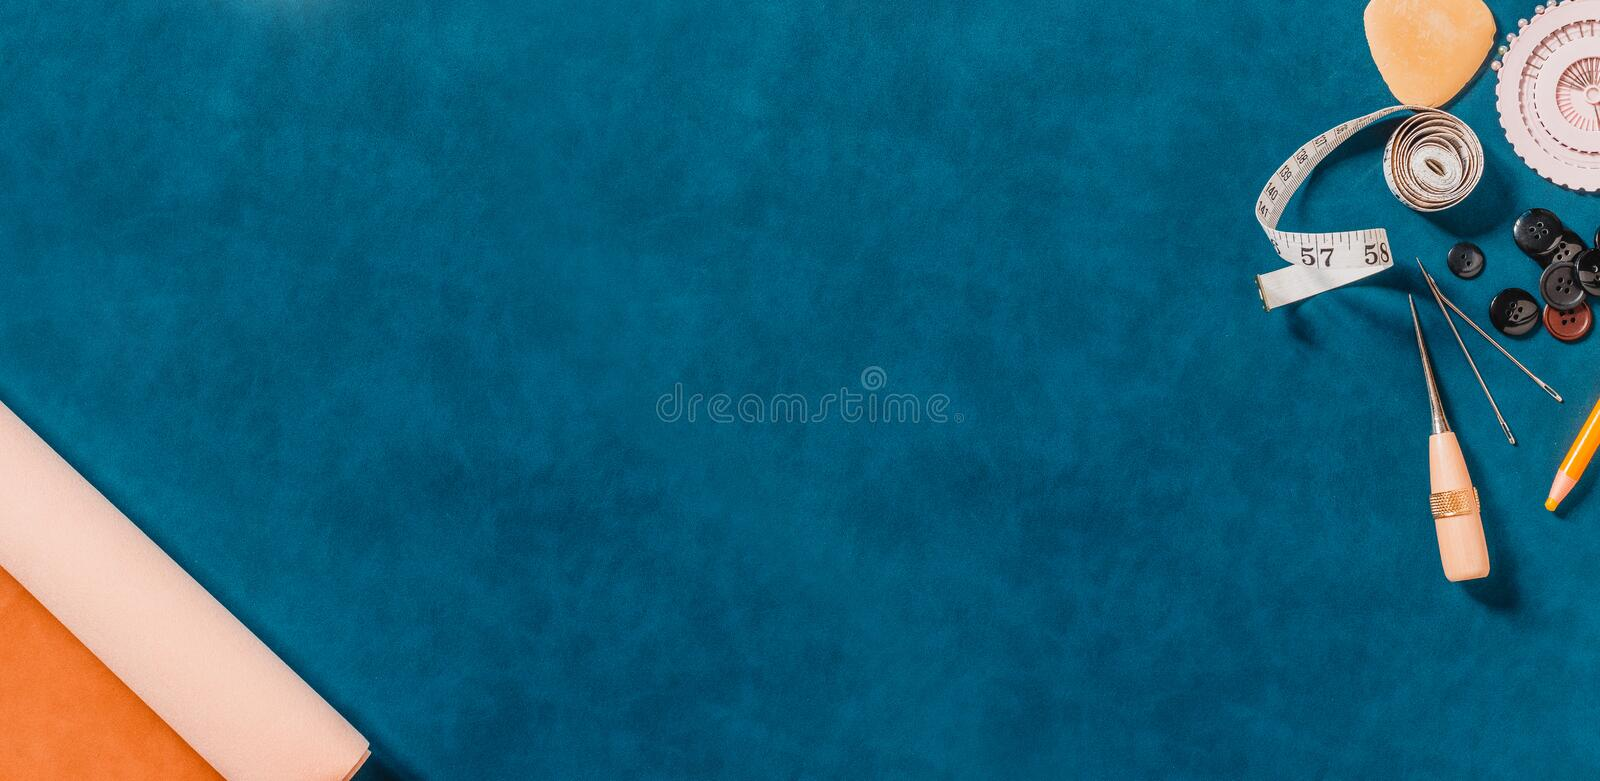 Crafting tools on natural leather on background. Wide frame with sewing tools and accessories. Top view royalty free stock photo